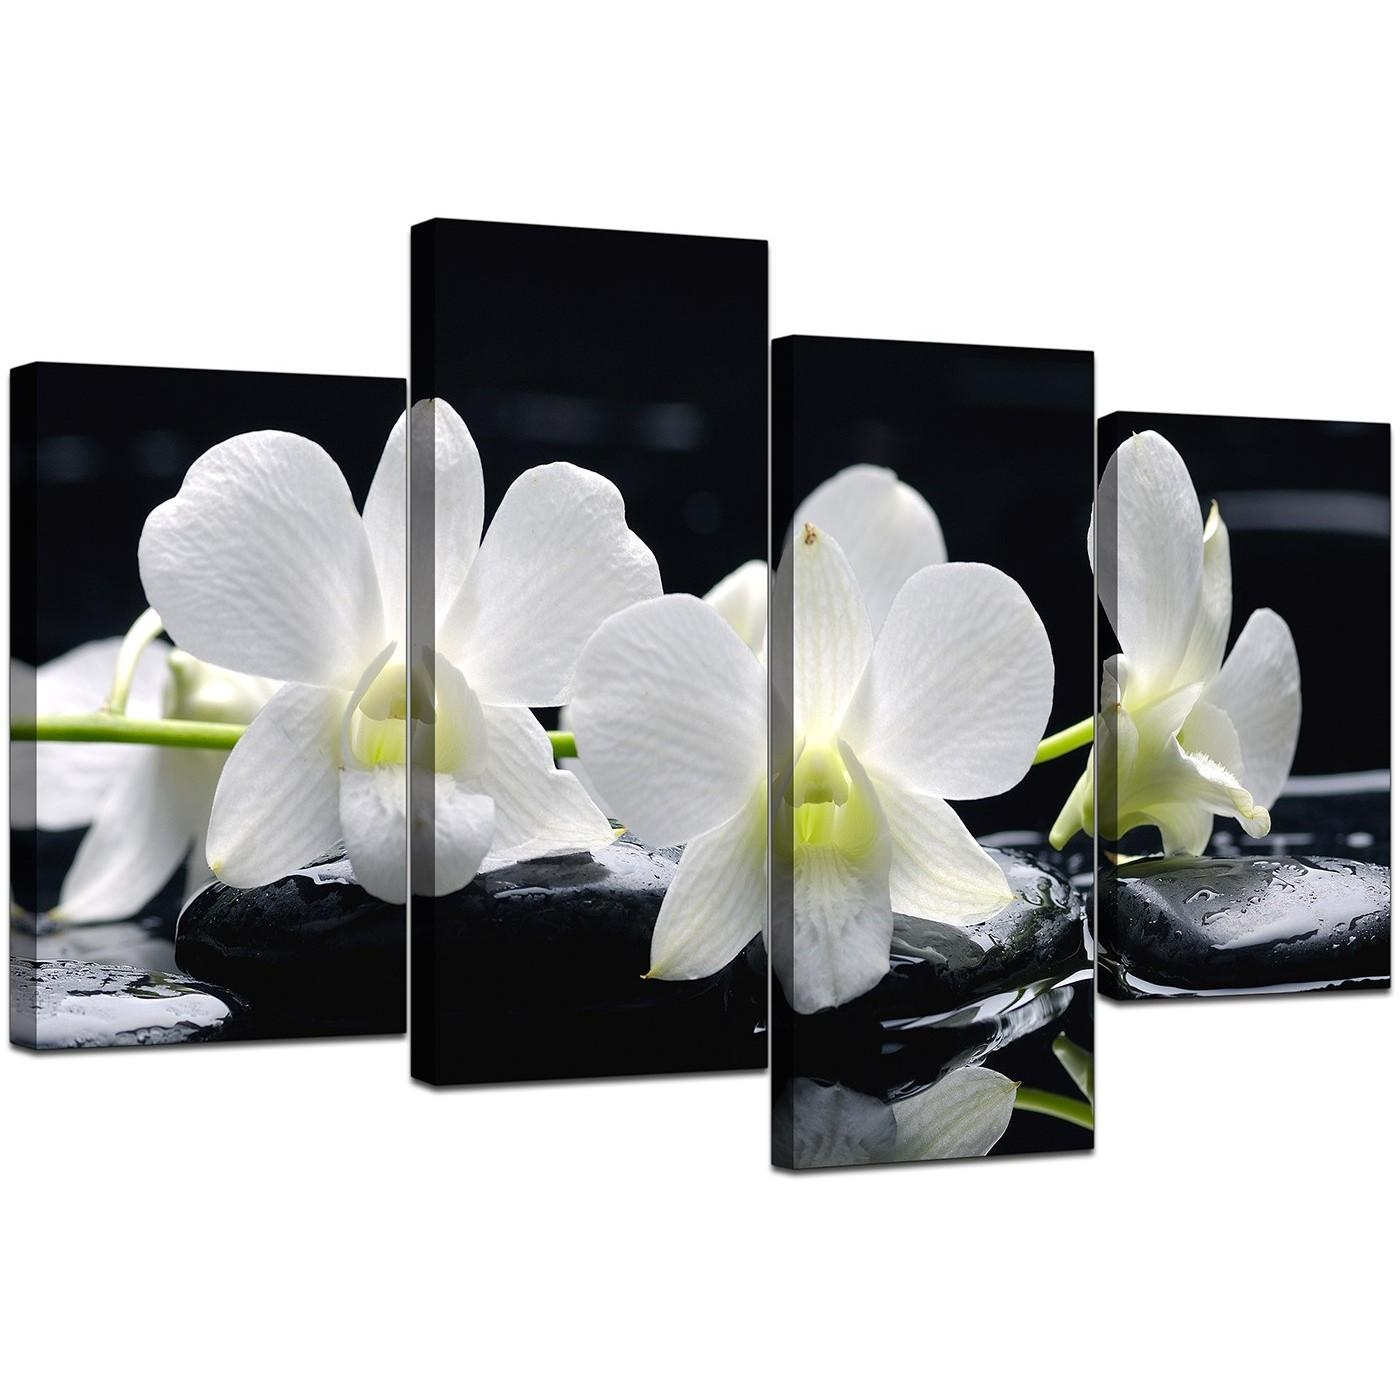 Canvas Wall Art Of Orchids In Black & White For Your Living Room With Large Black And White Wall Art (View 18 of 20)